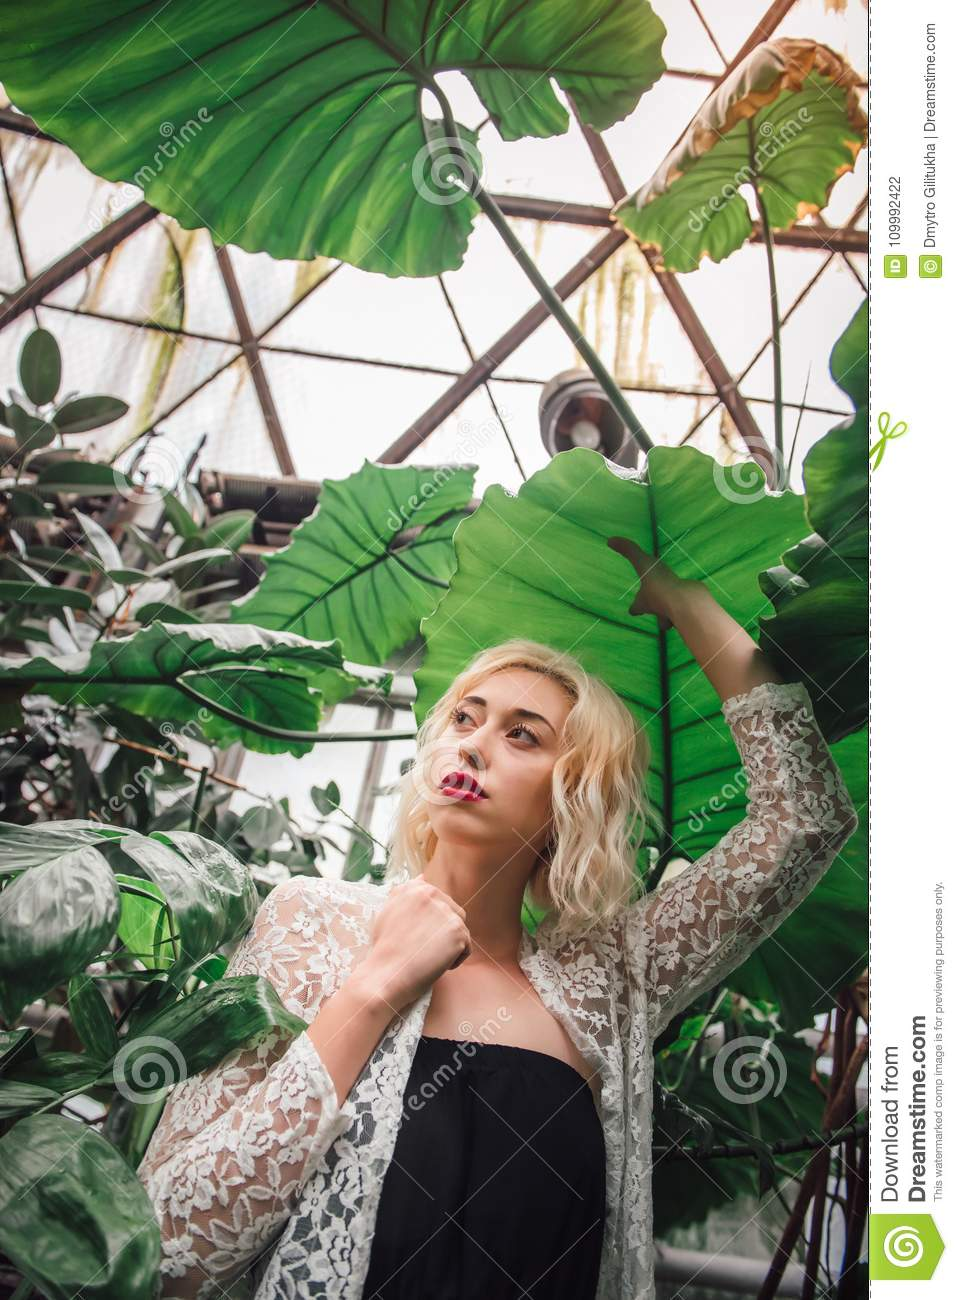 4298ed6e7d728 Fashion portrait of young female model wearing white lace cardigan and  black top standing under the exotic leaf holding it with one hand at the  greenhouse, ...